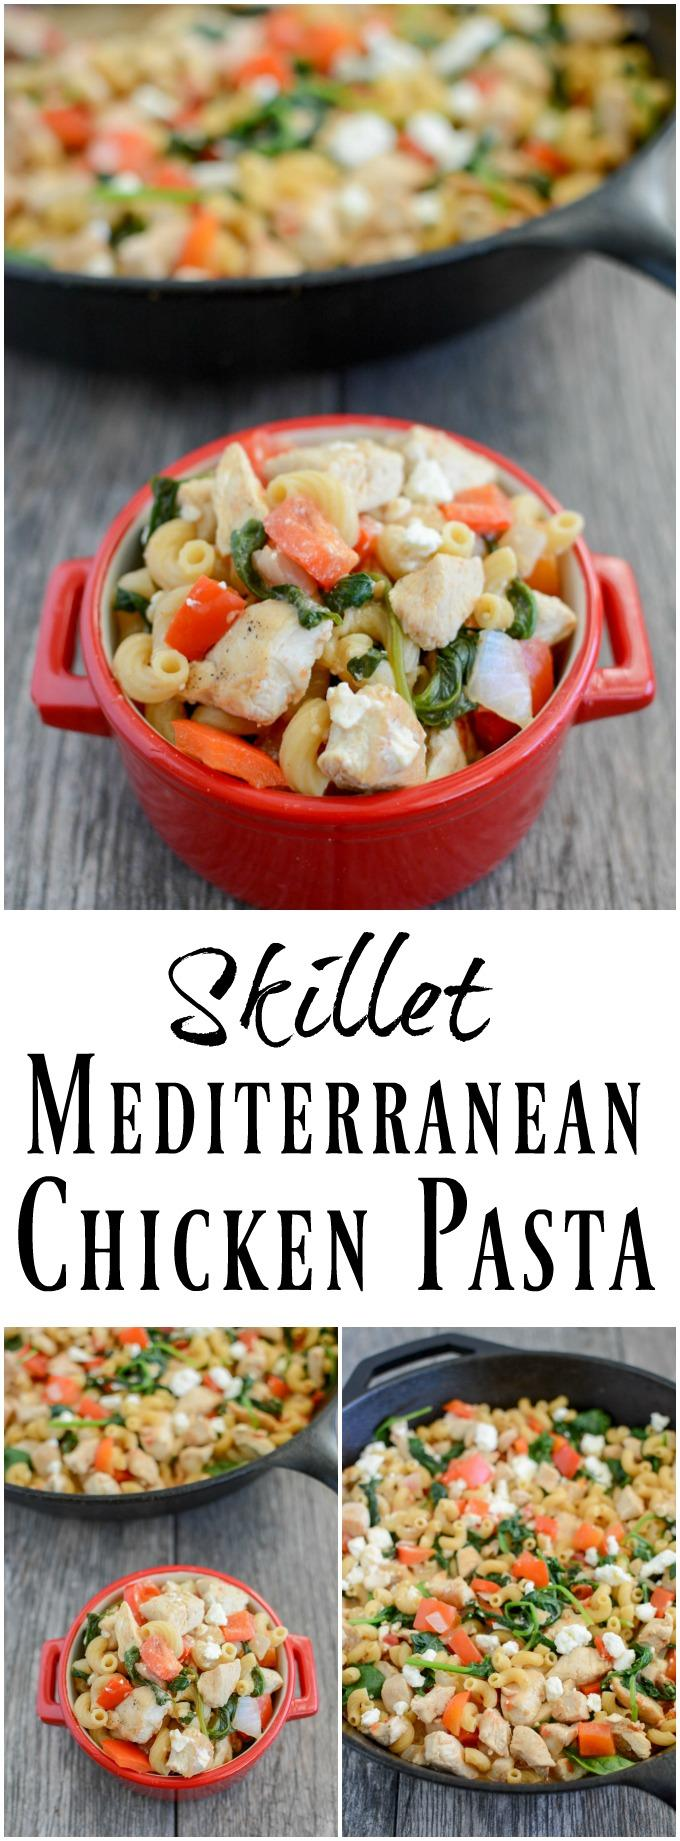 Only one pot required for this Skillet Mediterranean Chicken Pasta! This easy, healthy dinner recipe is the perfect one-pan meal for busy weeknights.